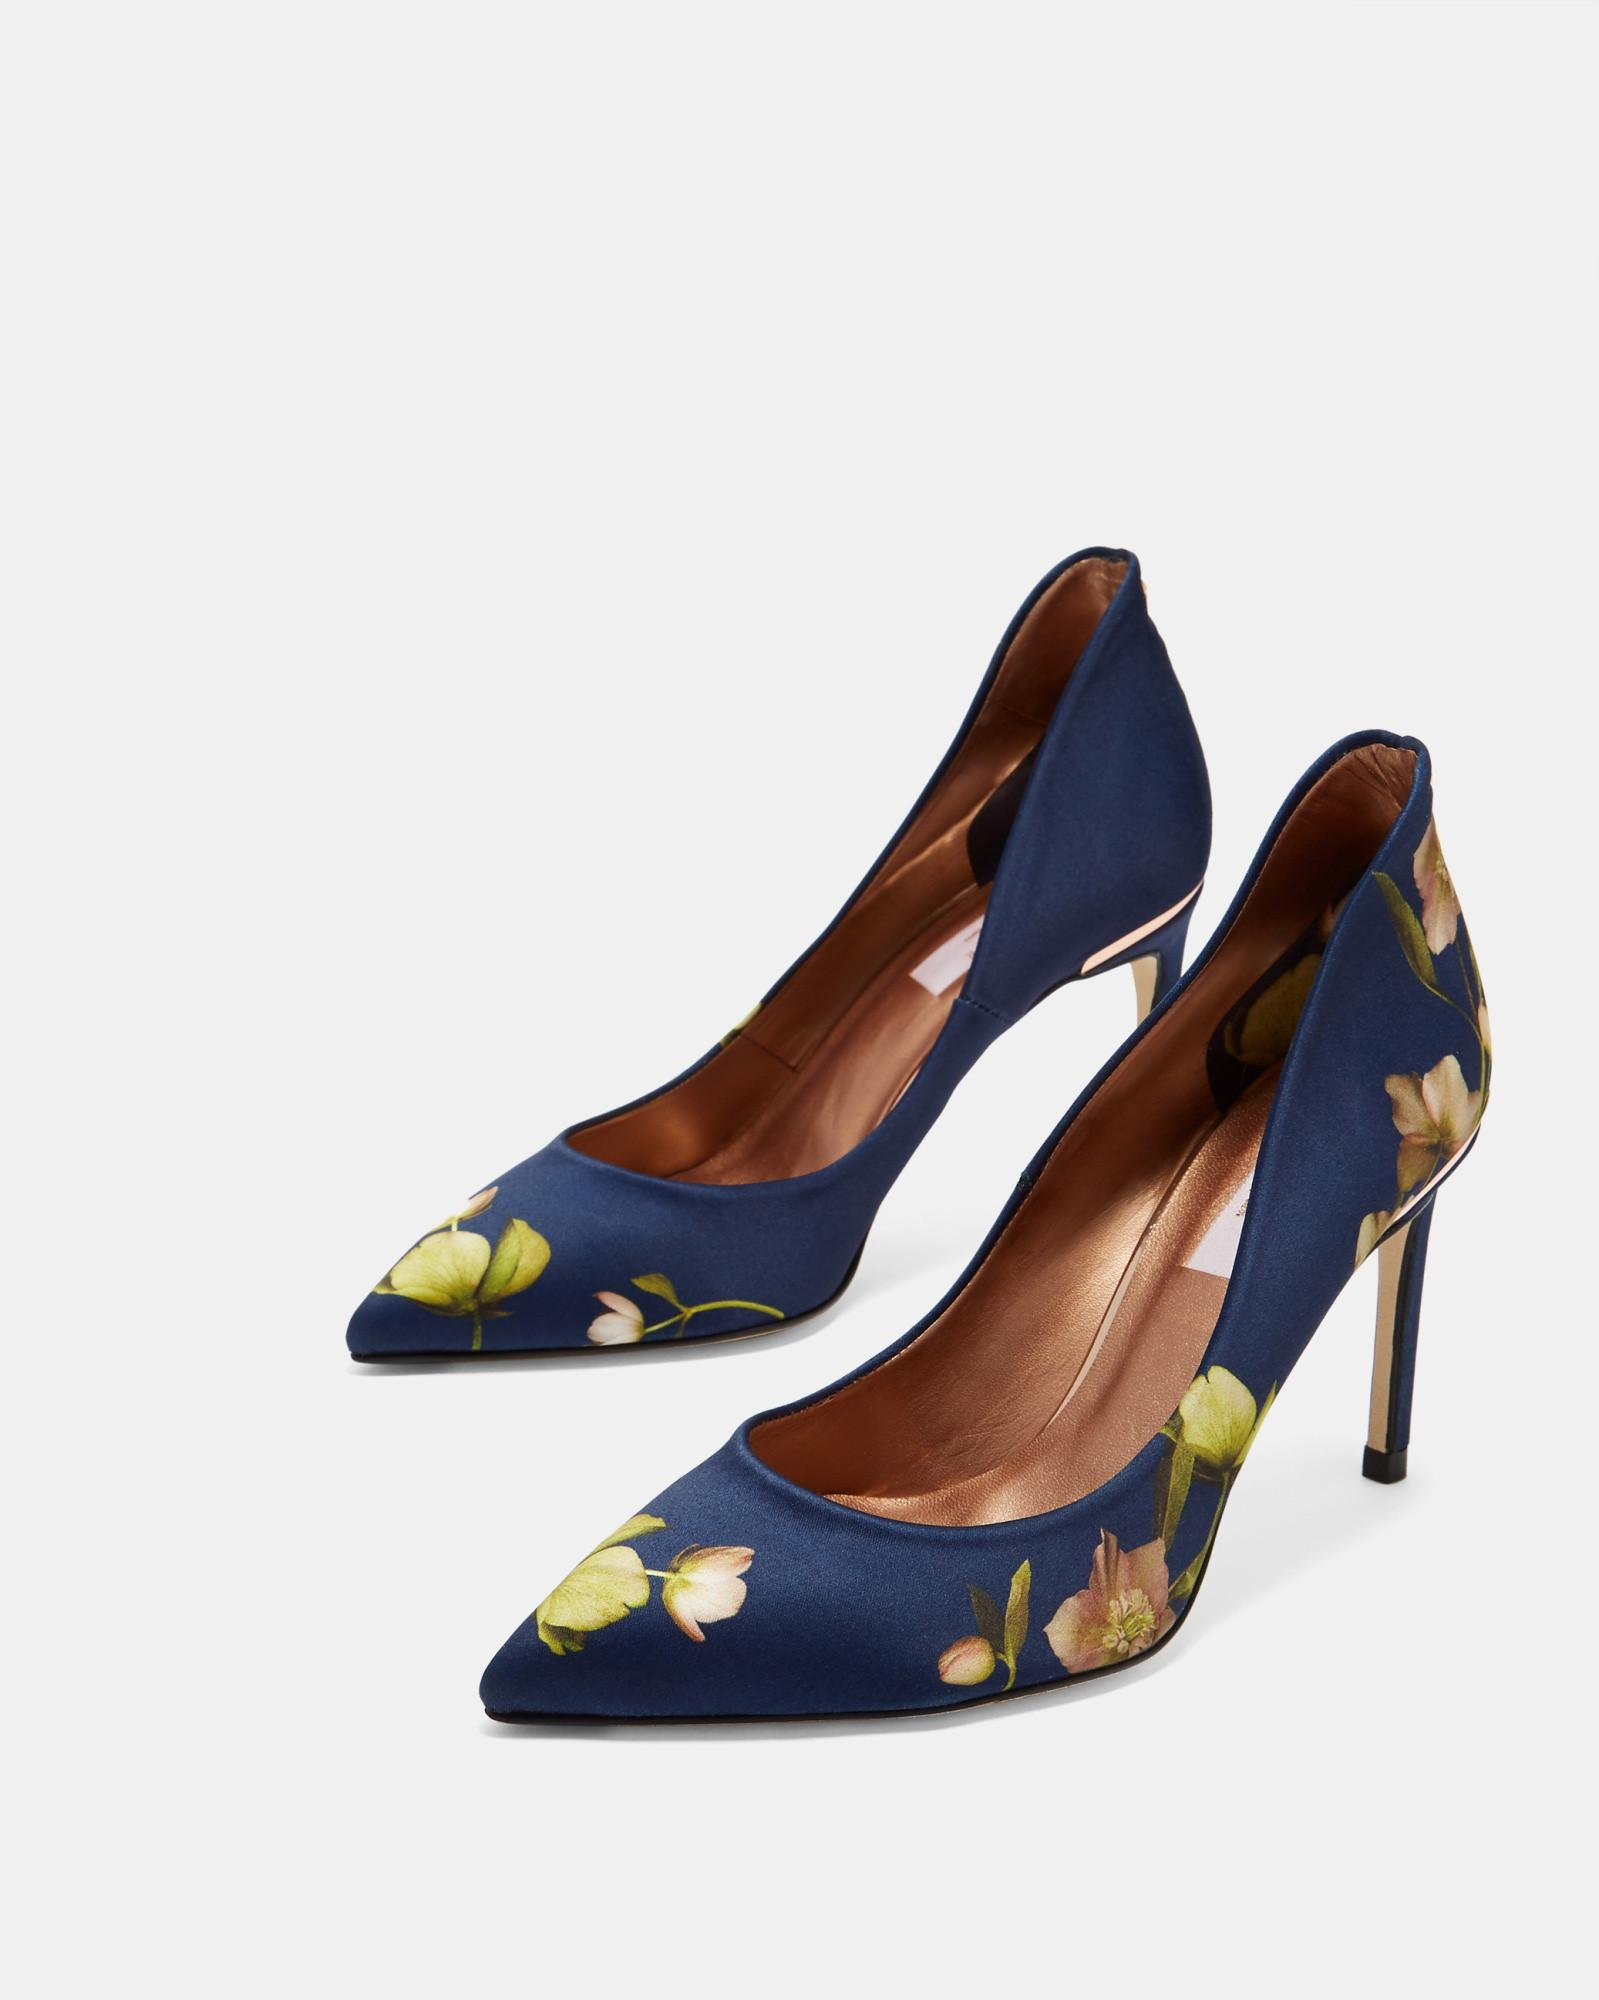 fe55c07e4d4b65 ... Ted Baker Arboretum High Back Courts in Blue - Lyst good selling 07f0d  71b9d ...